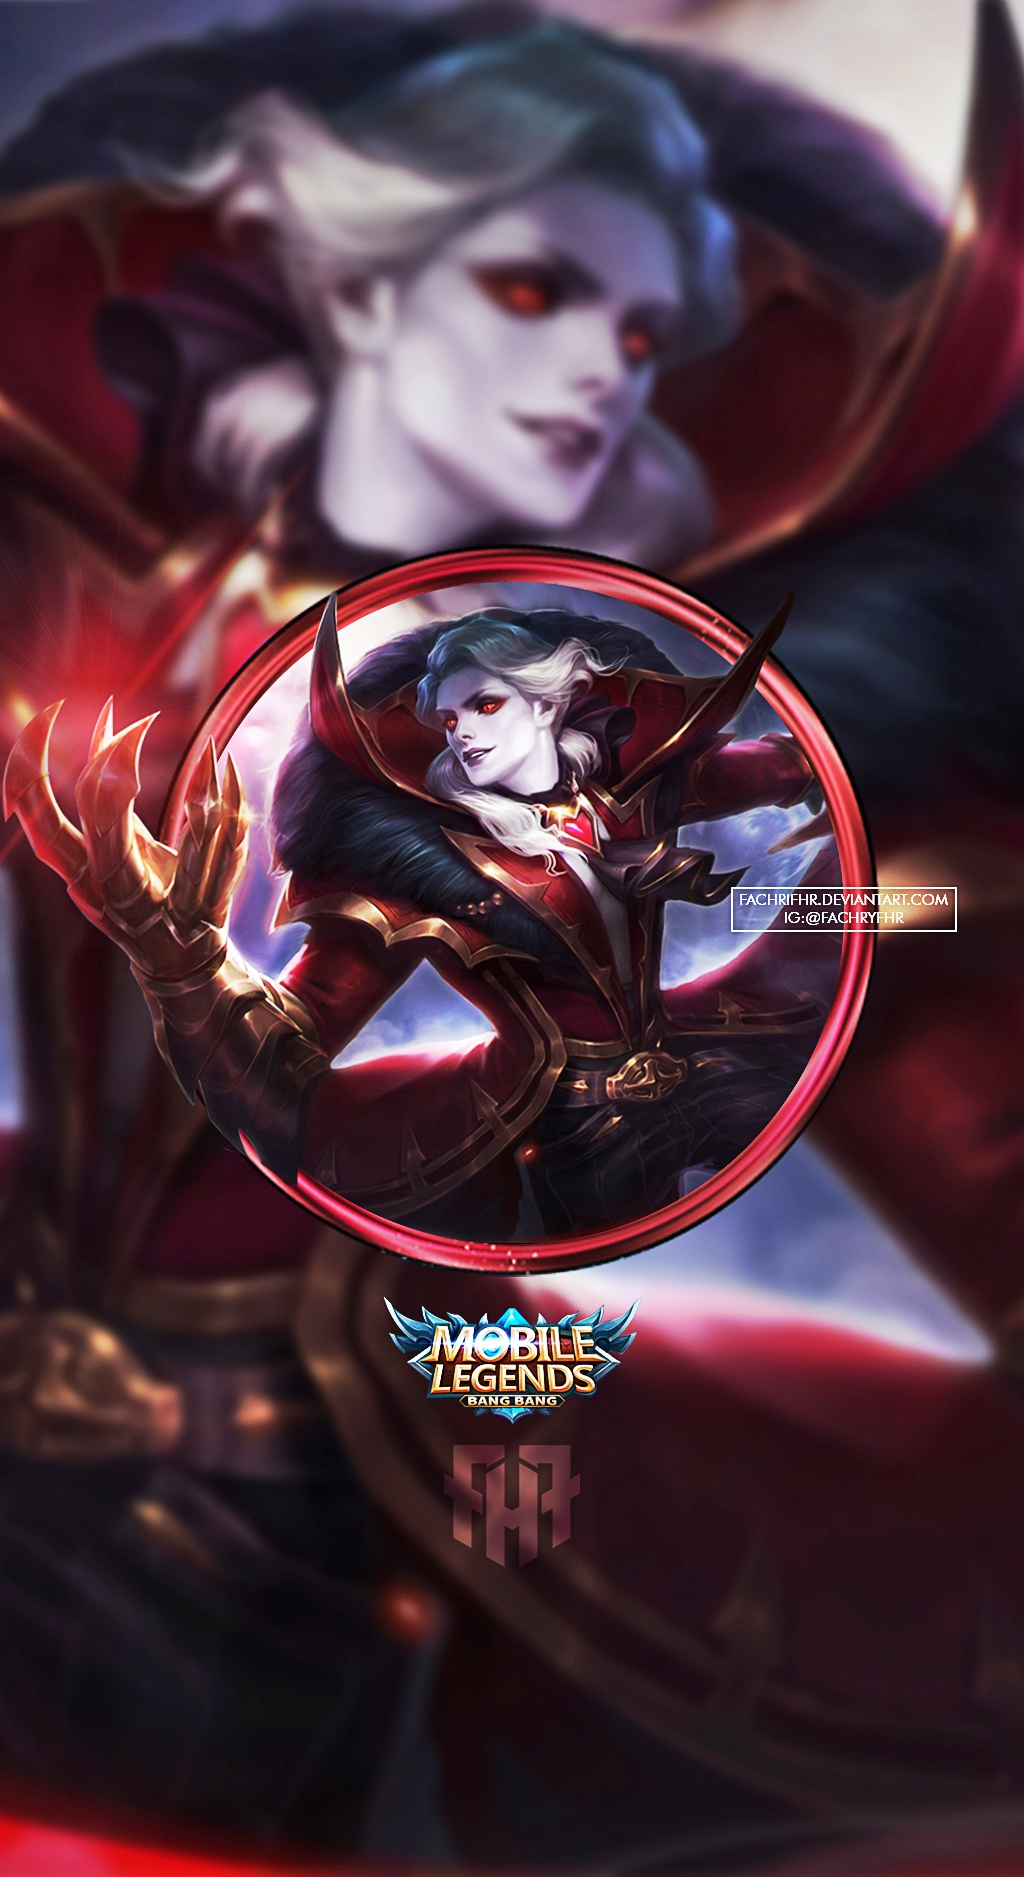 wallpaper phone alucard viscount by fachrifhr dc1jj5t